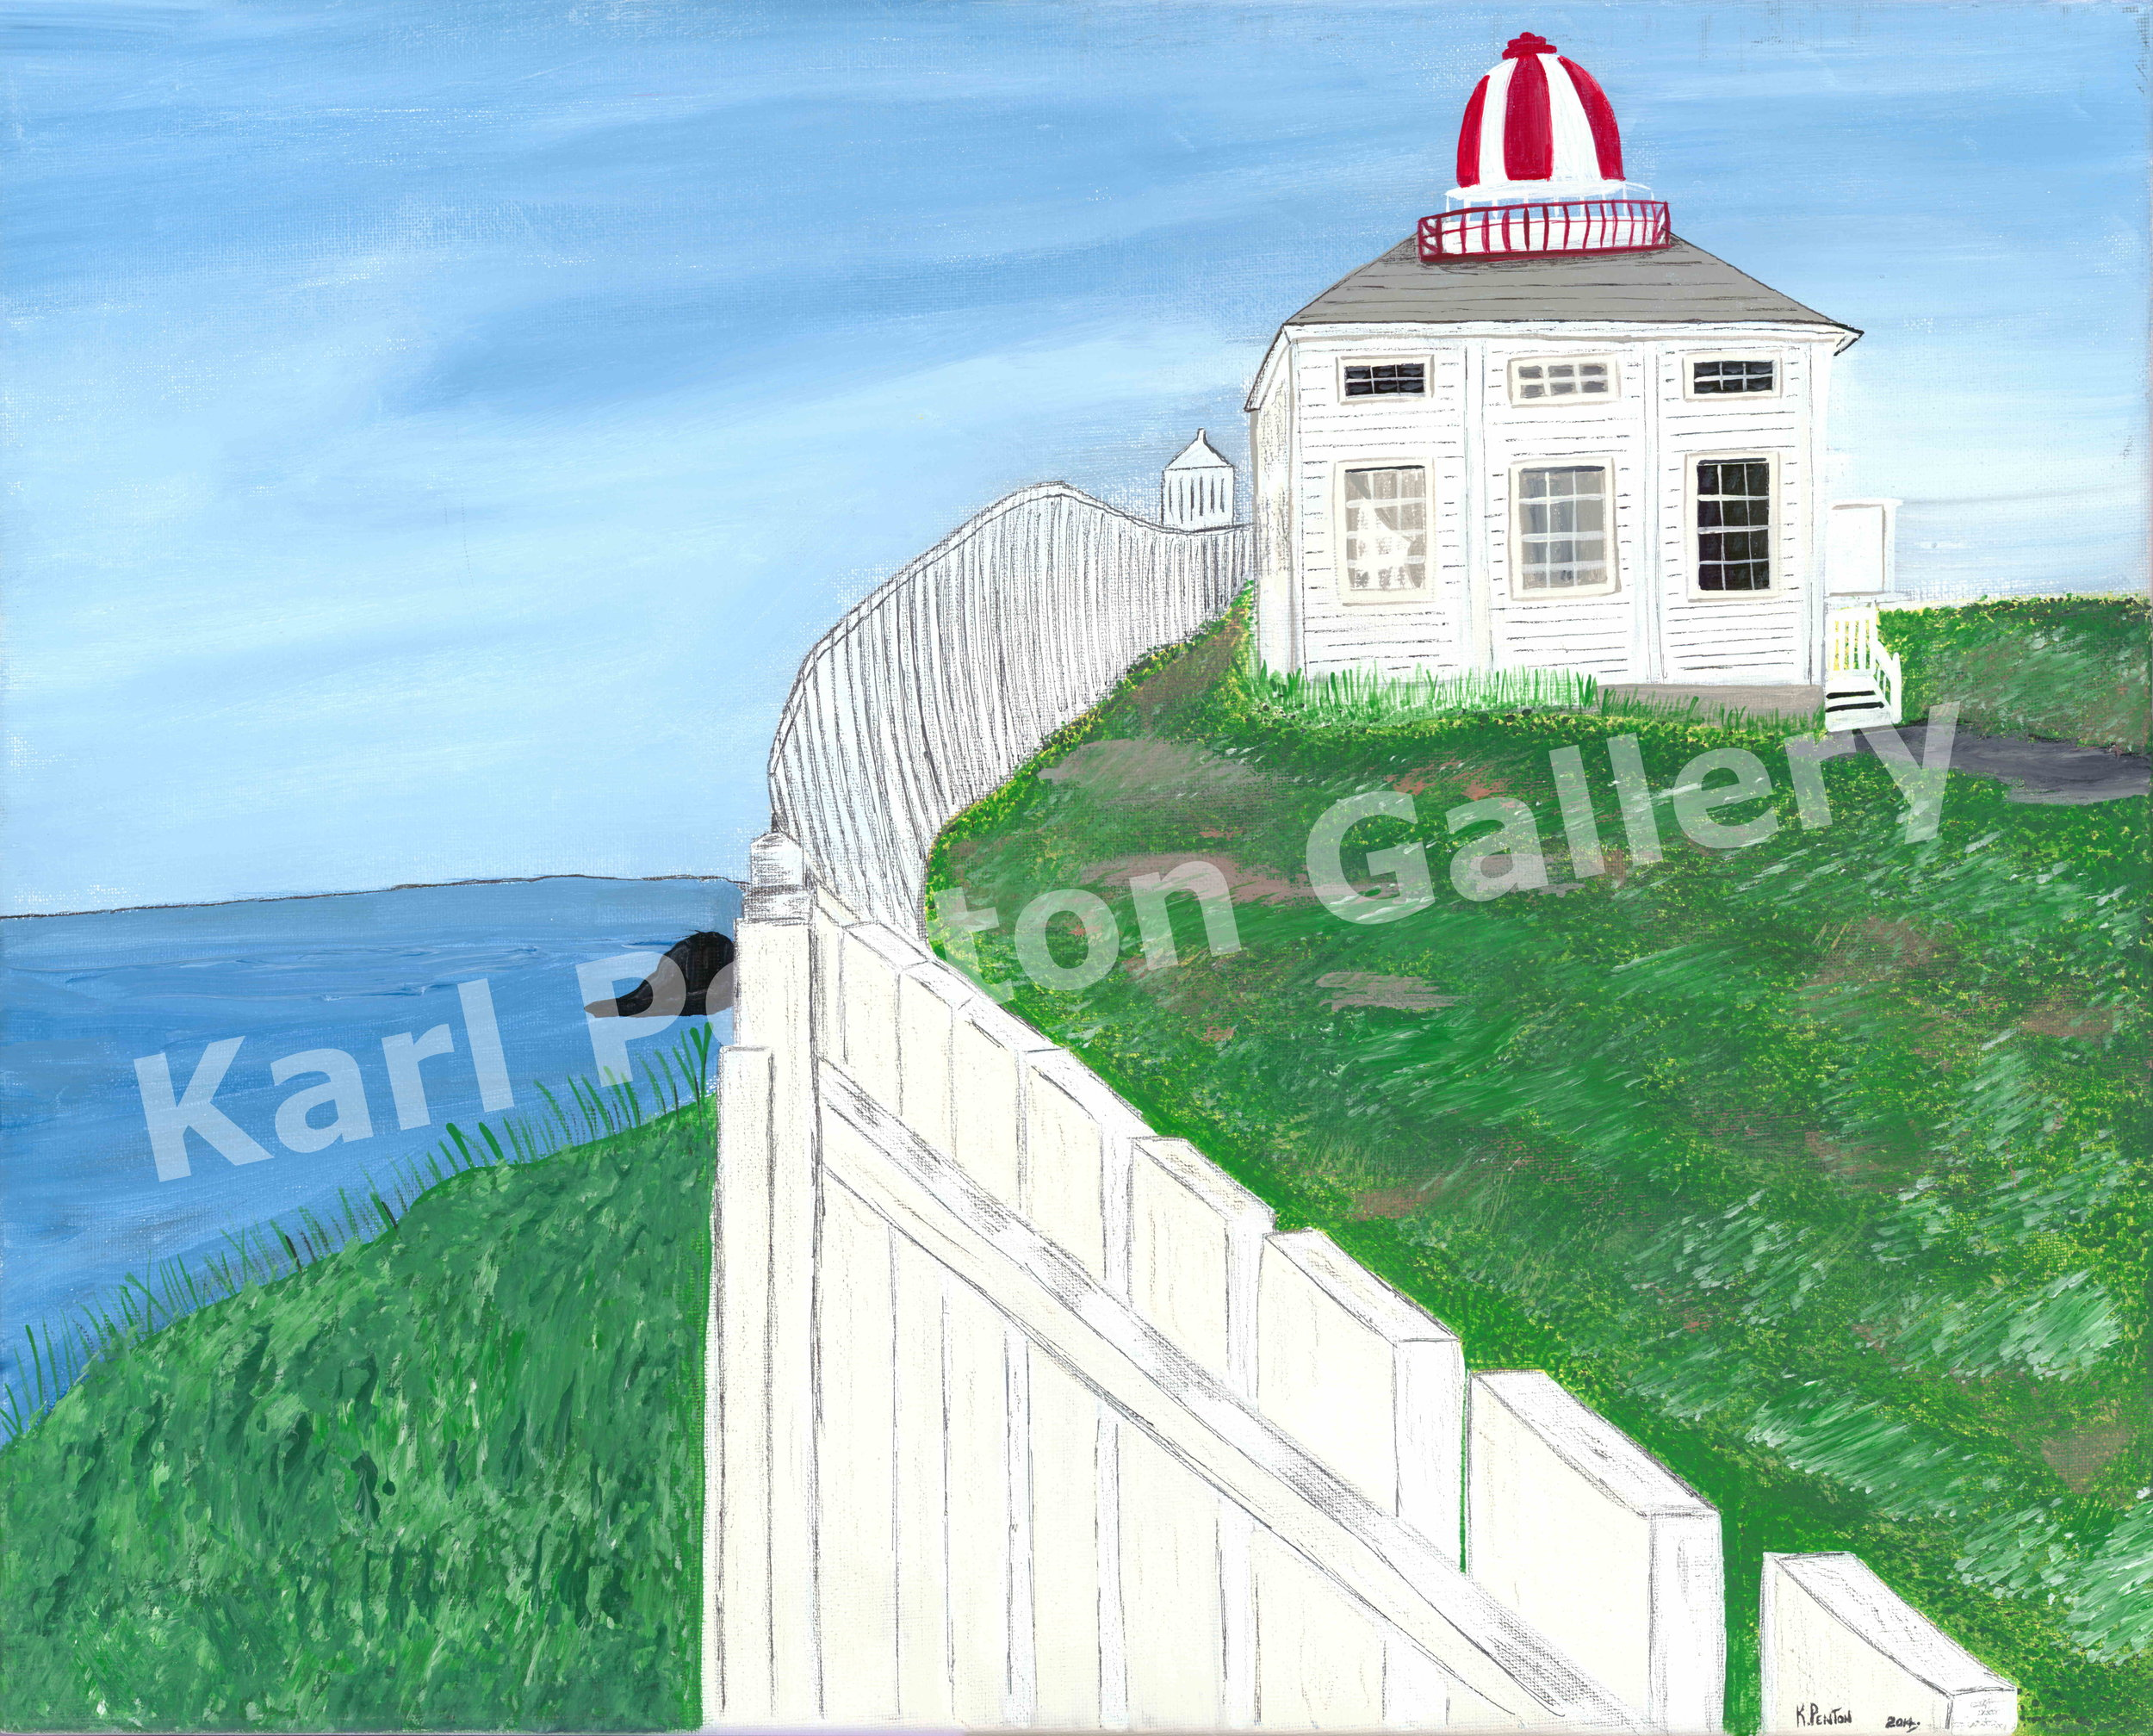 Cape Spear - The place where